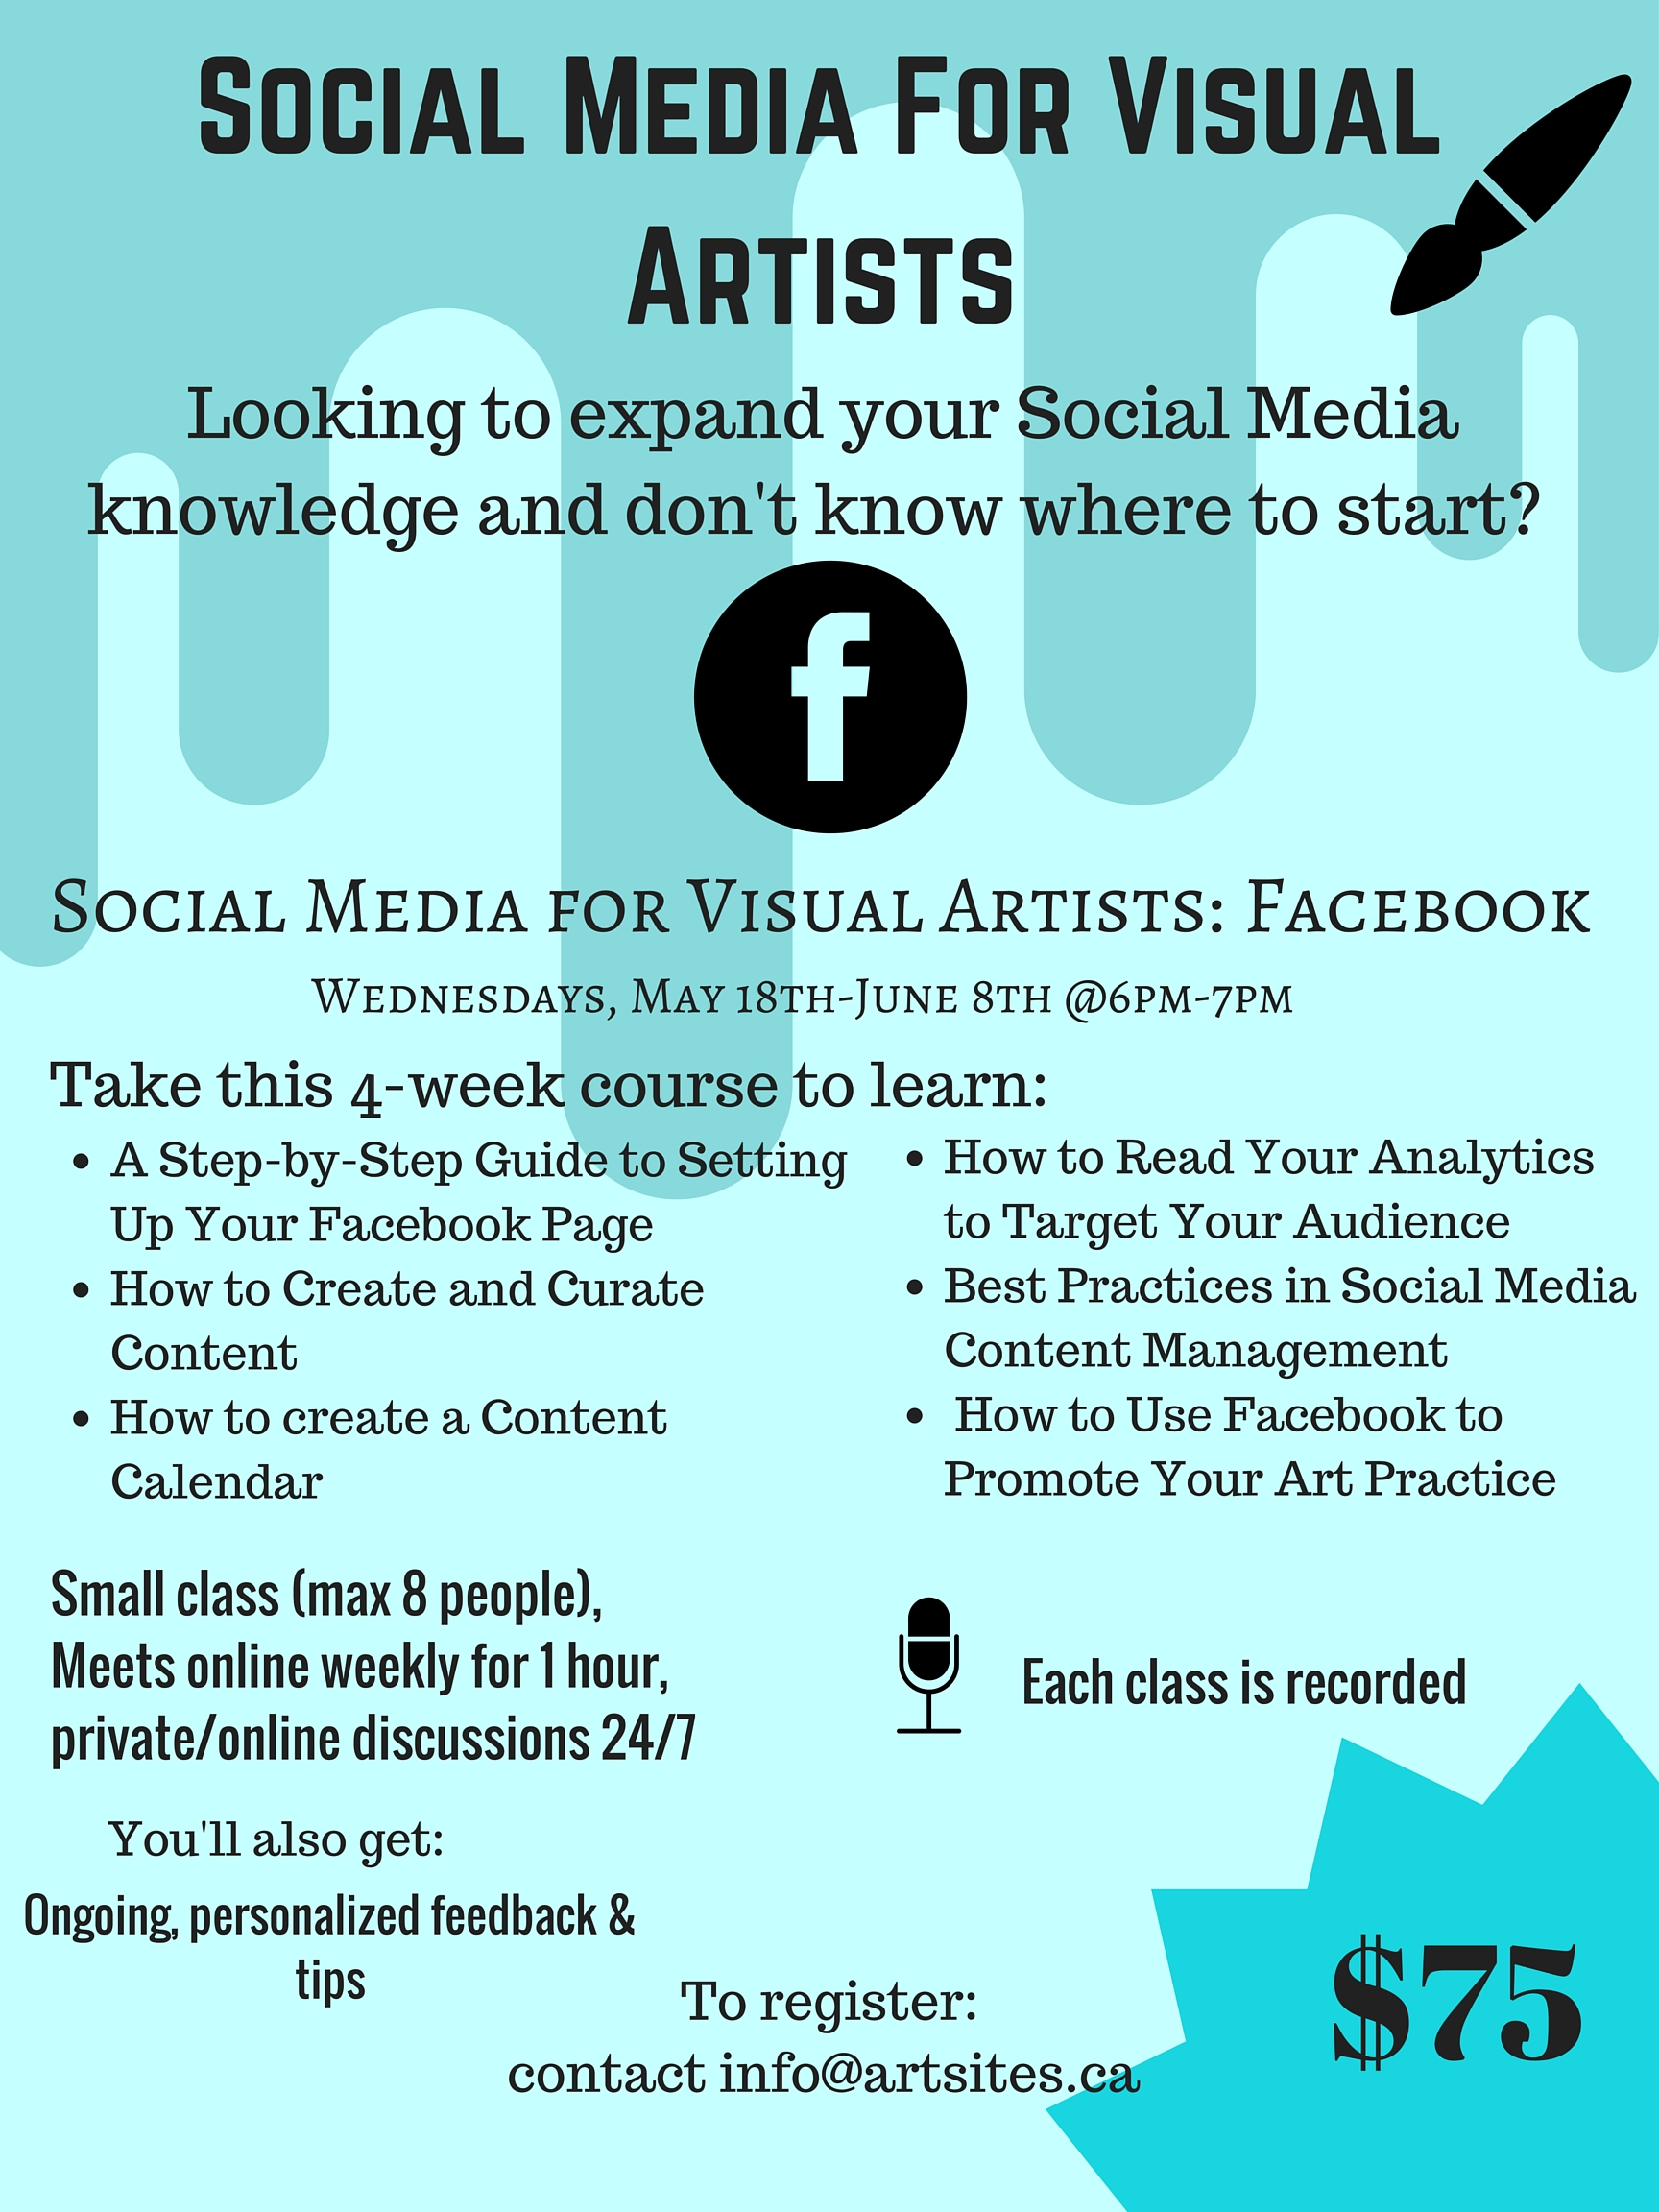 Social Media for Visual Artists Workshop - Facebook